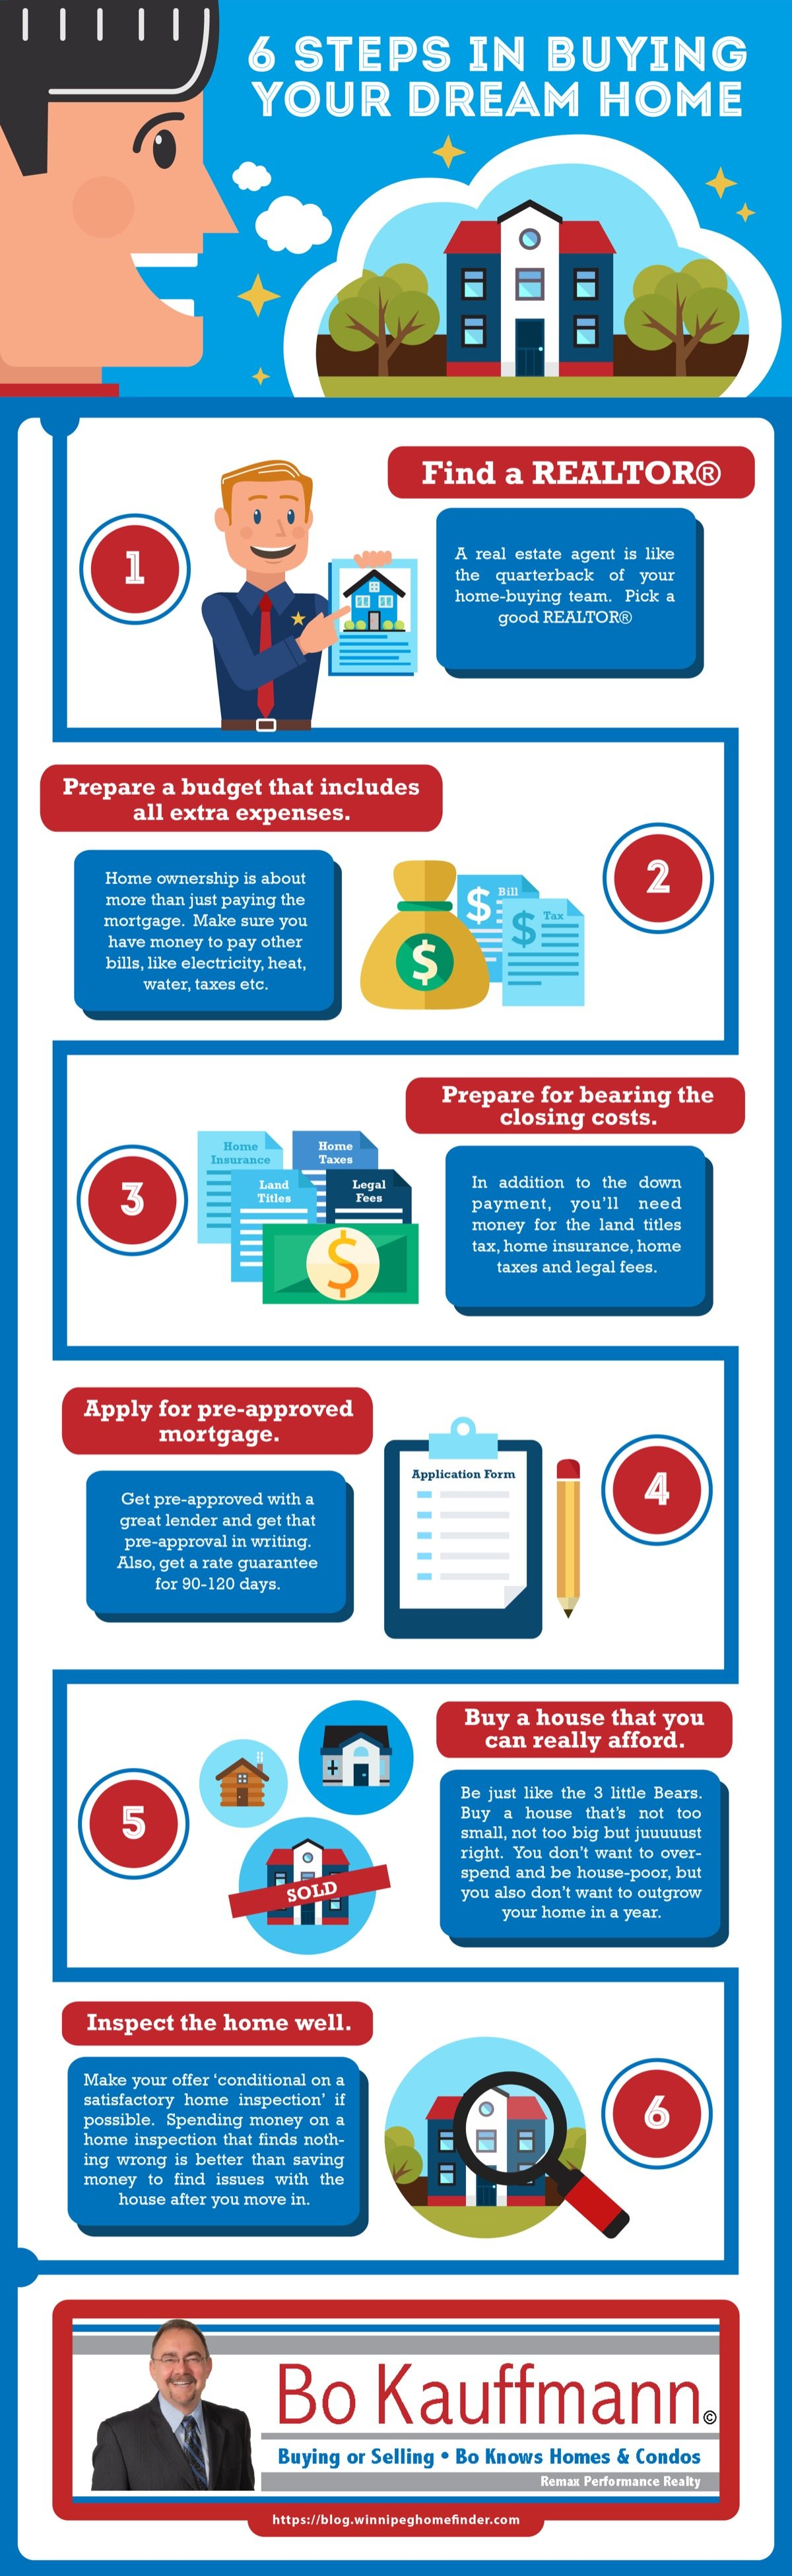 6 Steps to assure a successful home-buying journey (Infographic)